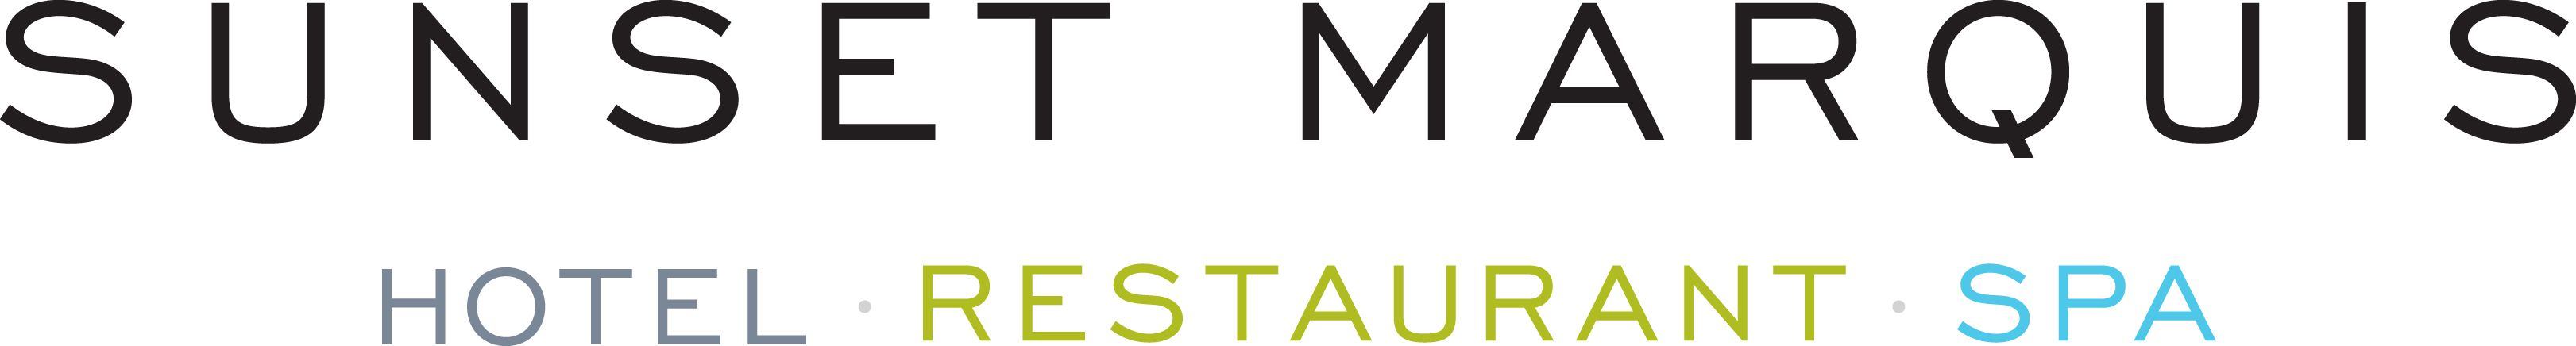 sunset_marquis_logo_color_spot